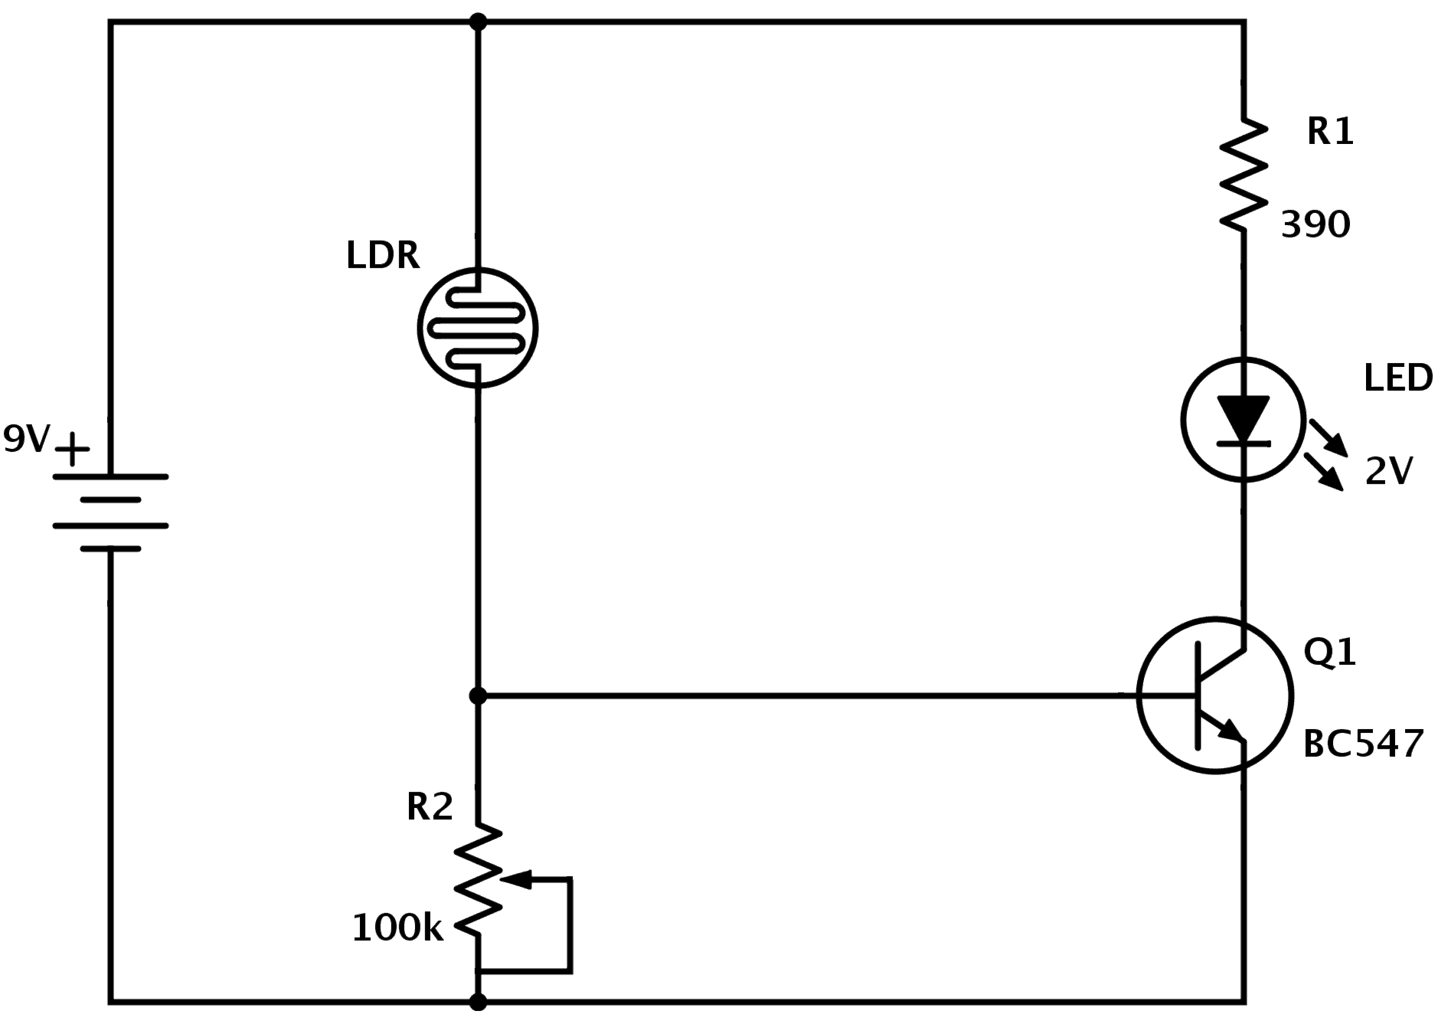 LDR circuit improved circuit diagram how to read and understand any schematic simple circuit diagram at gsmportal.co